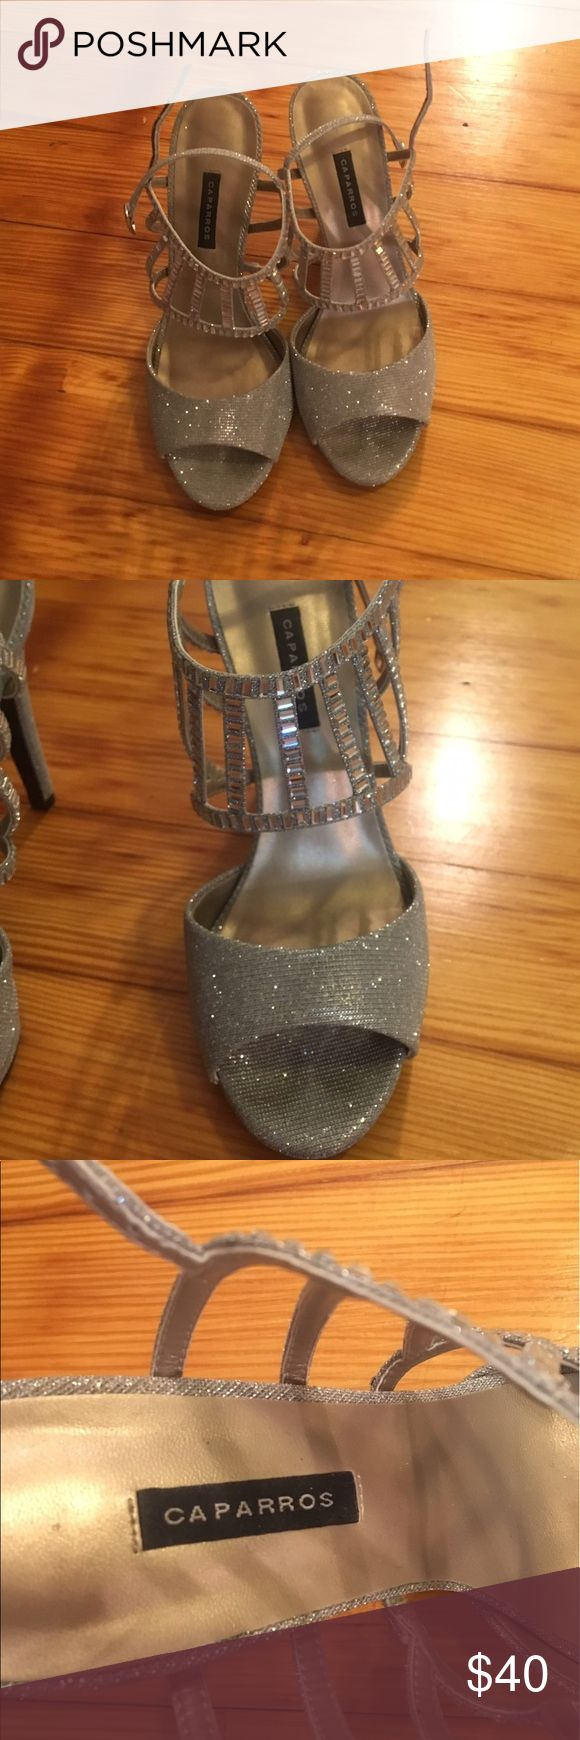 Caparros silver sparkle heels. Size 8.5 Worn once. Size 8.5 caparros heels, silver sparkles. Worn one night for prom. Caparros Shoes Heels